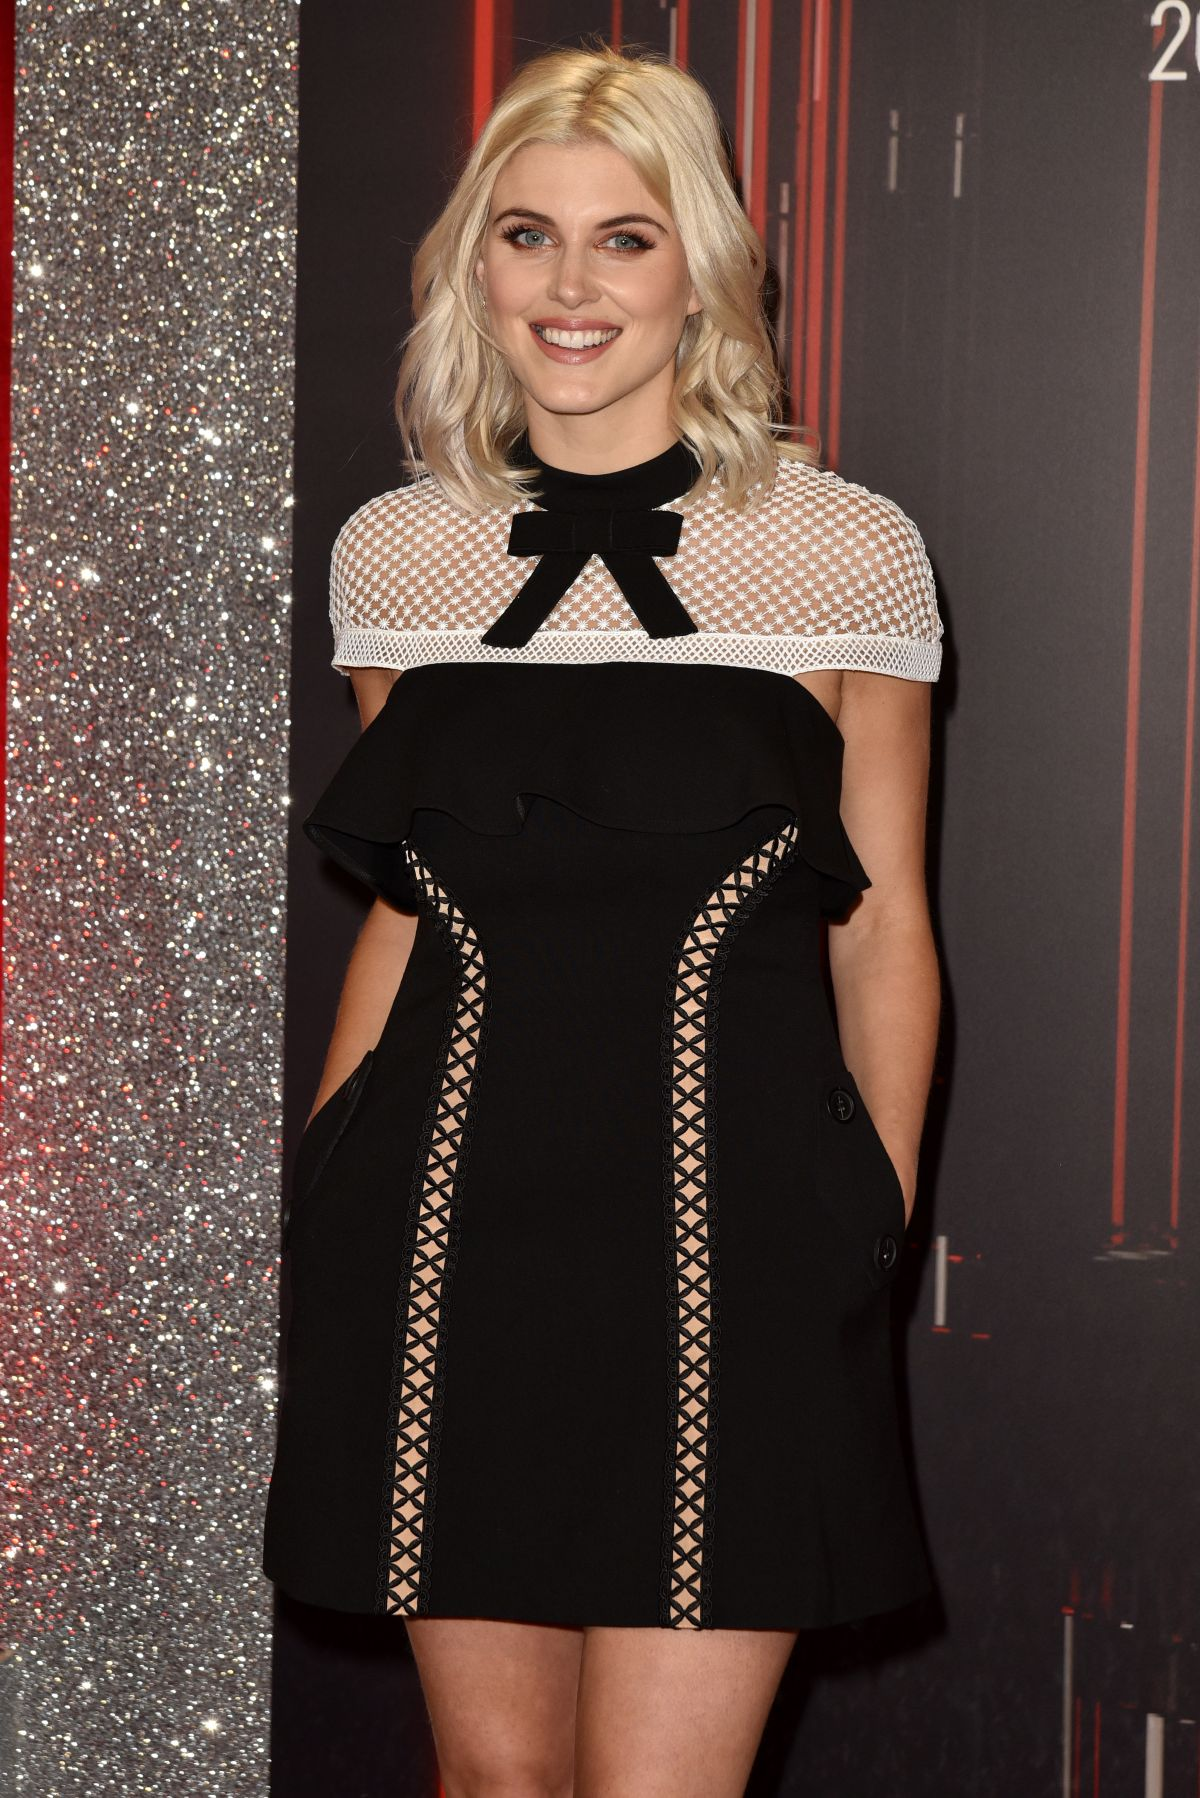 ASHLEY JAMES at British Soap Awards in Manchester 06/03/2017